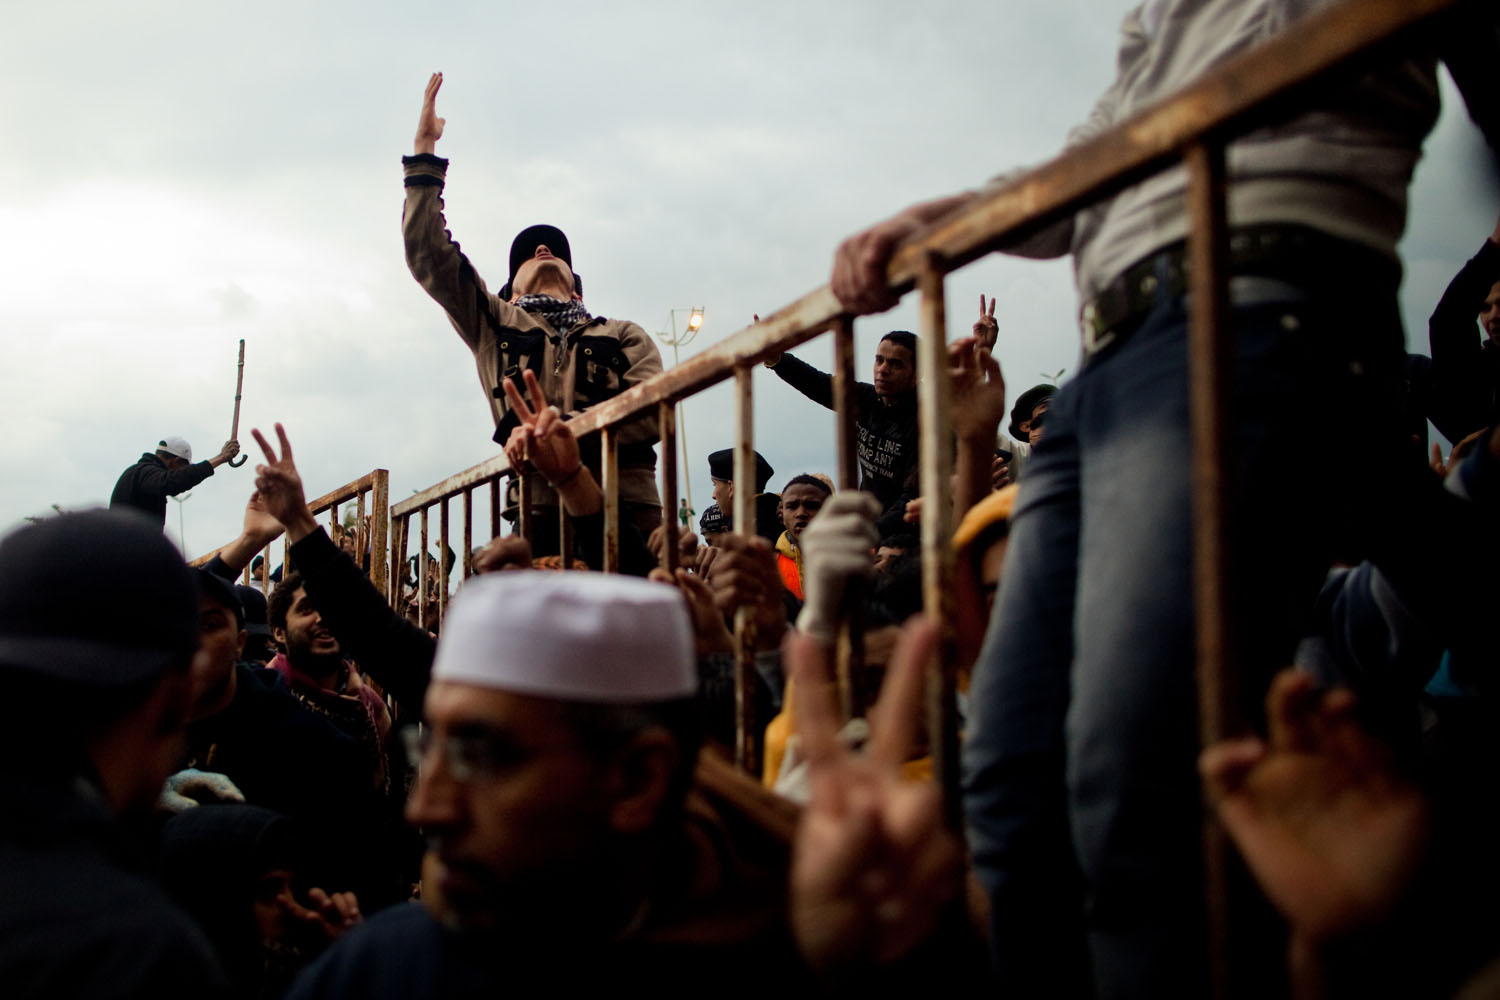 Anti-Gaddafi protesters chant slogans during a protest in Benghazi.